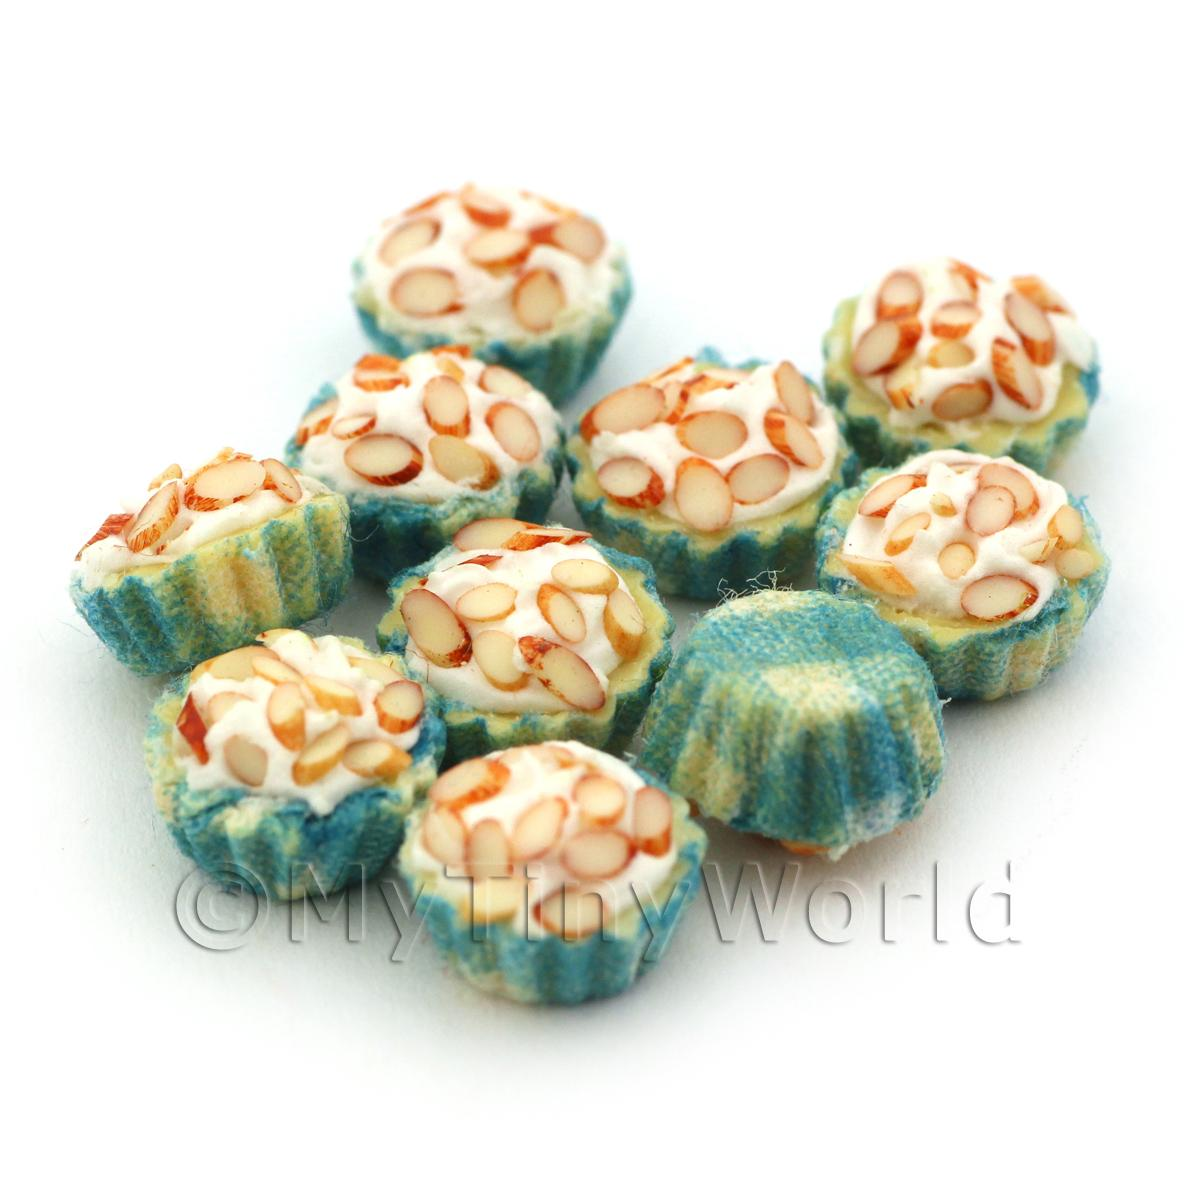 Miniature Chopped Almond Cupcake With A Blue And White Paper Cup